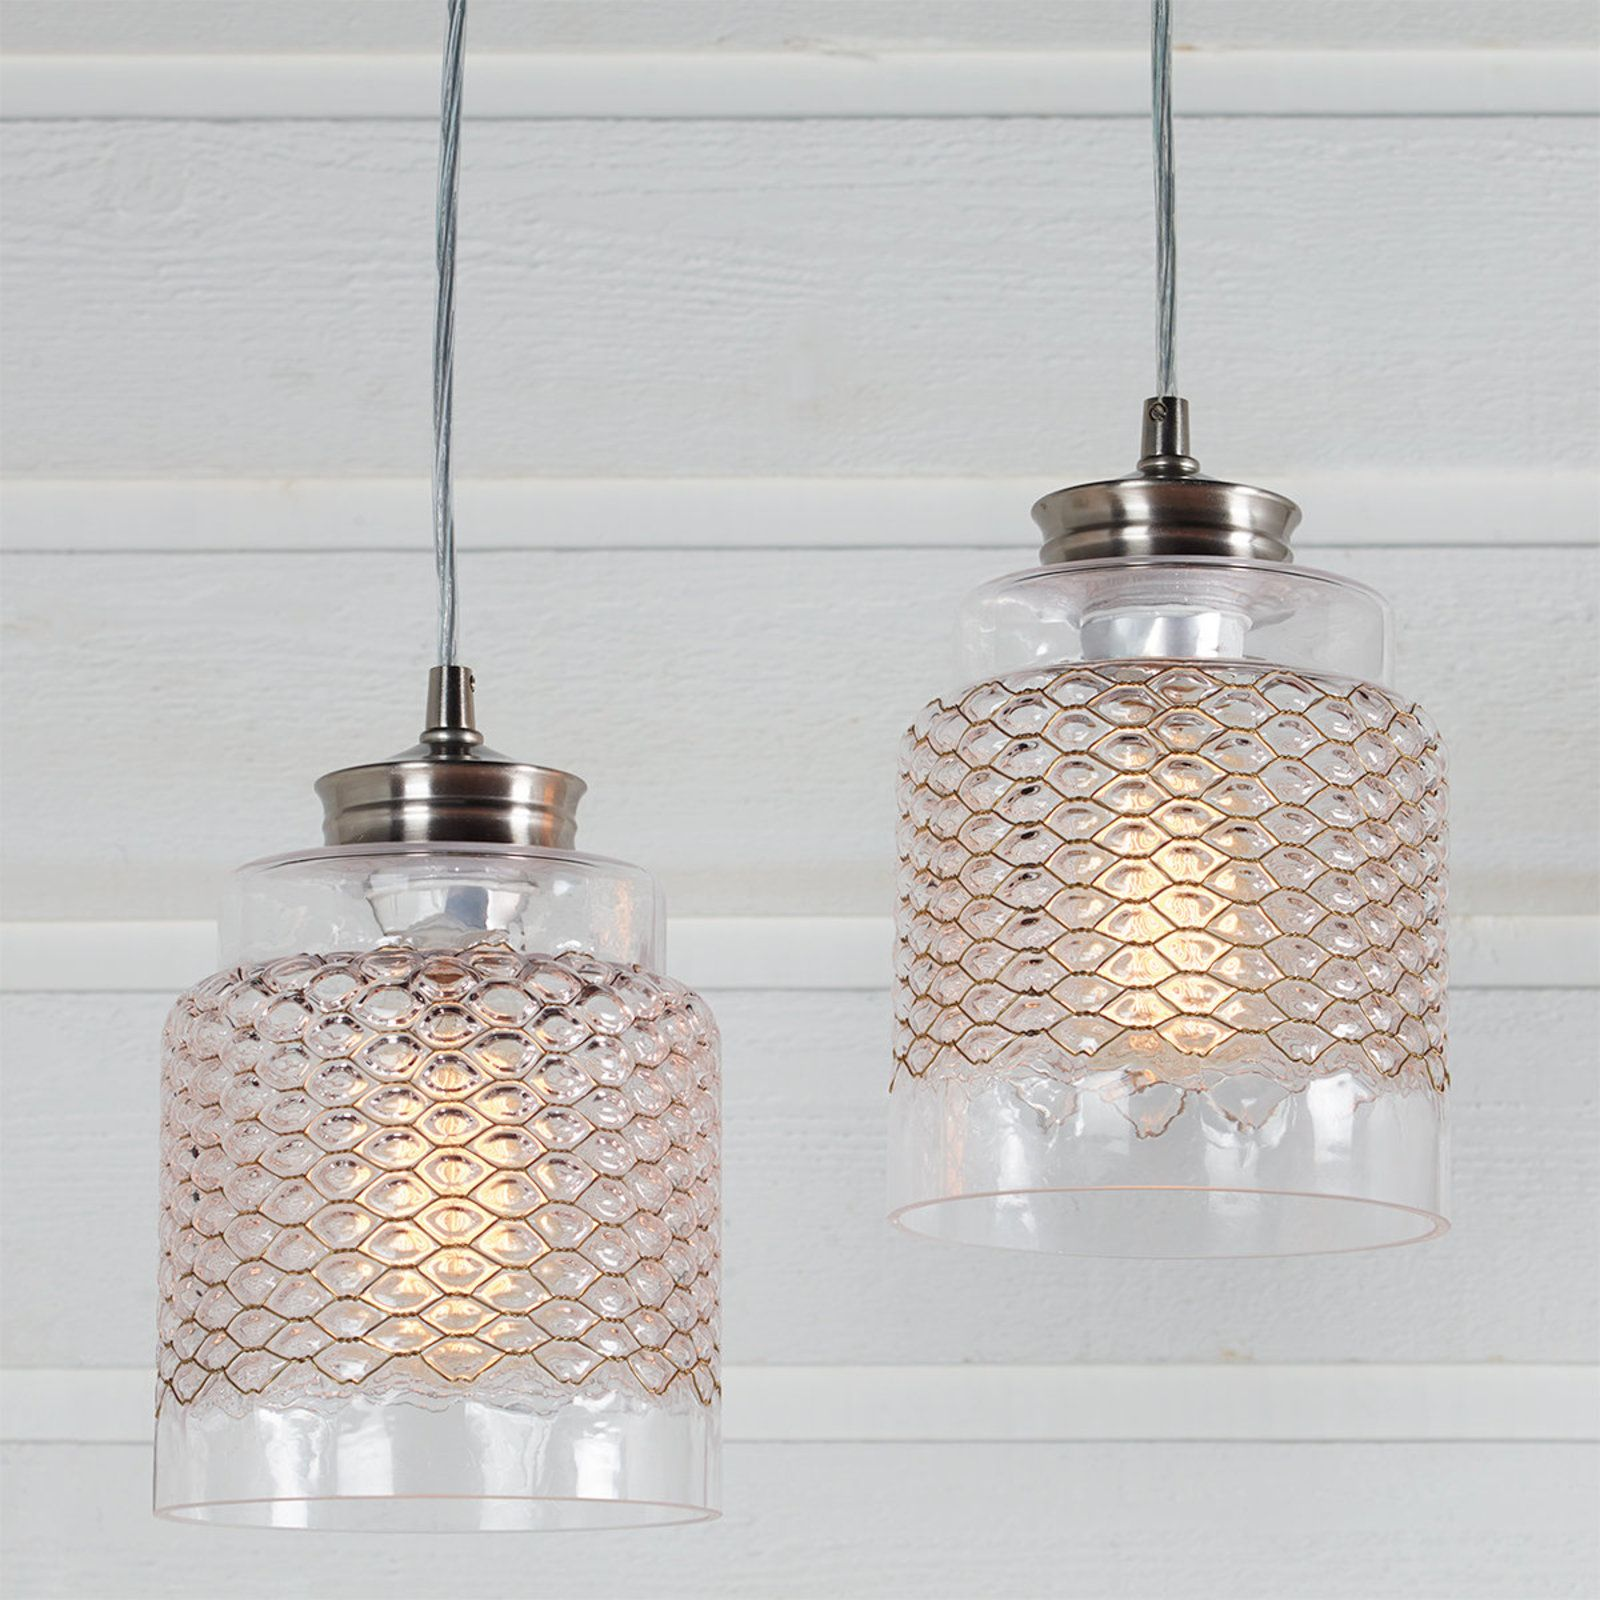 Metal Honeycomb Glass Pendant | Glass pendants, Chicken wire frame ...